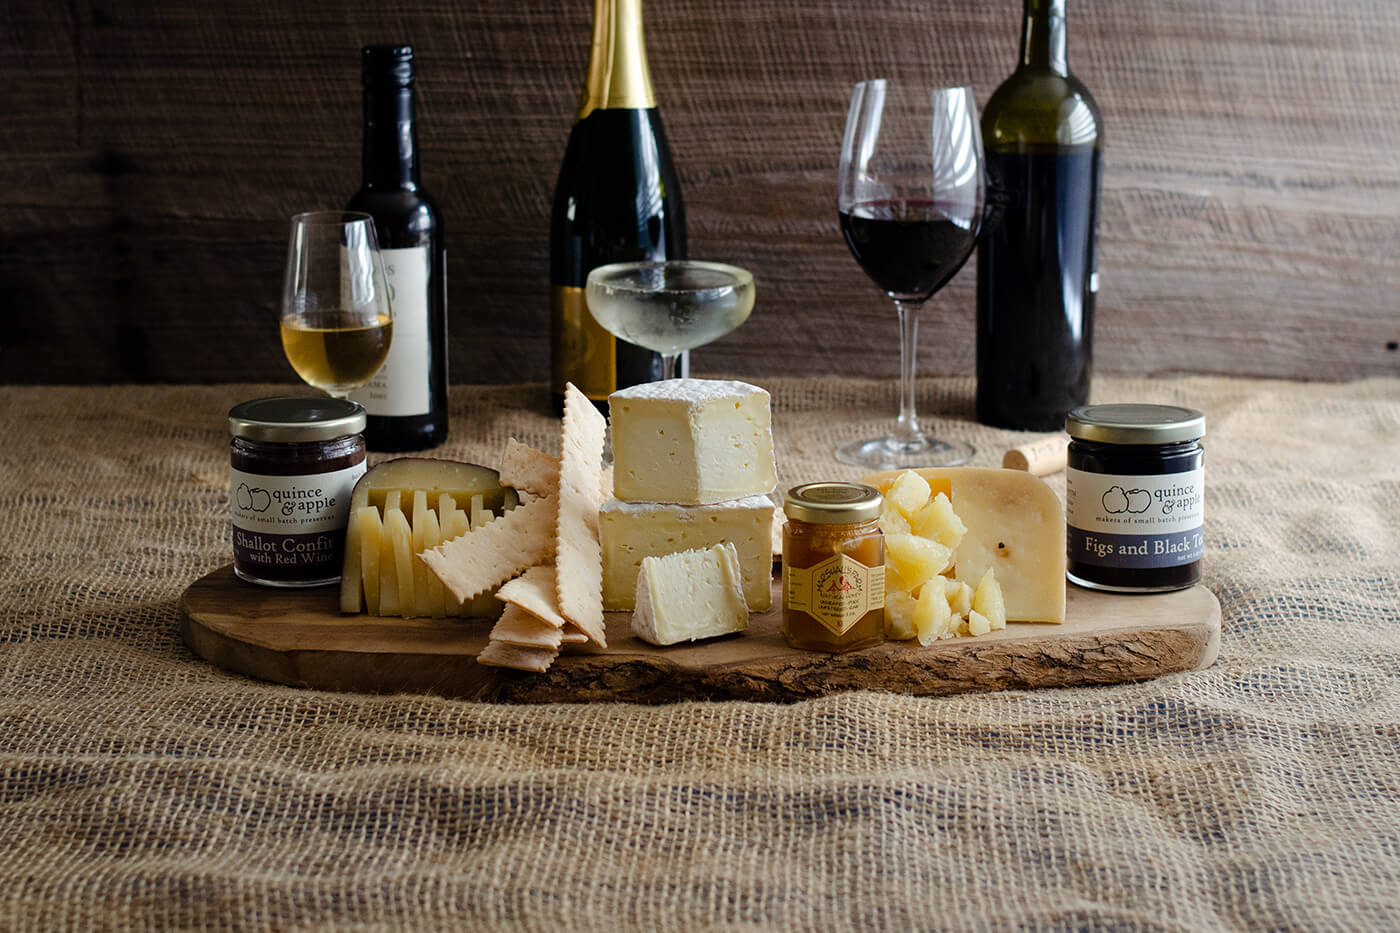 Cowgirl Creamery 'Just Add Wine' Collection for a gift